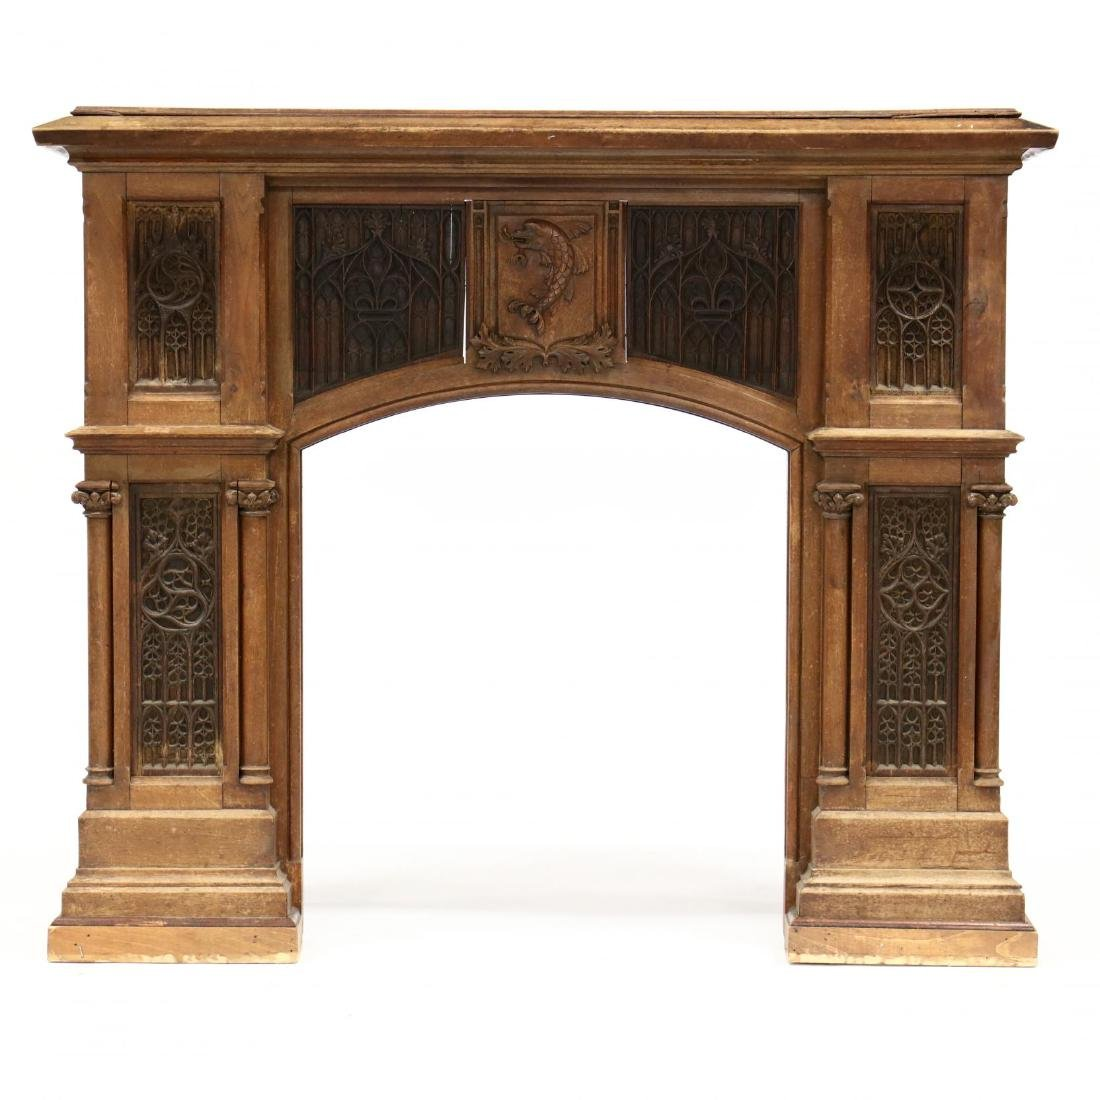 Gothic Revival Carved Oak Fireplace Mantel